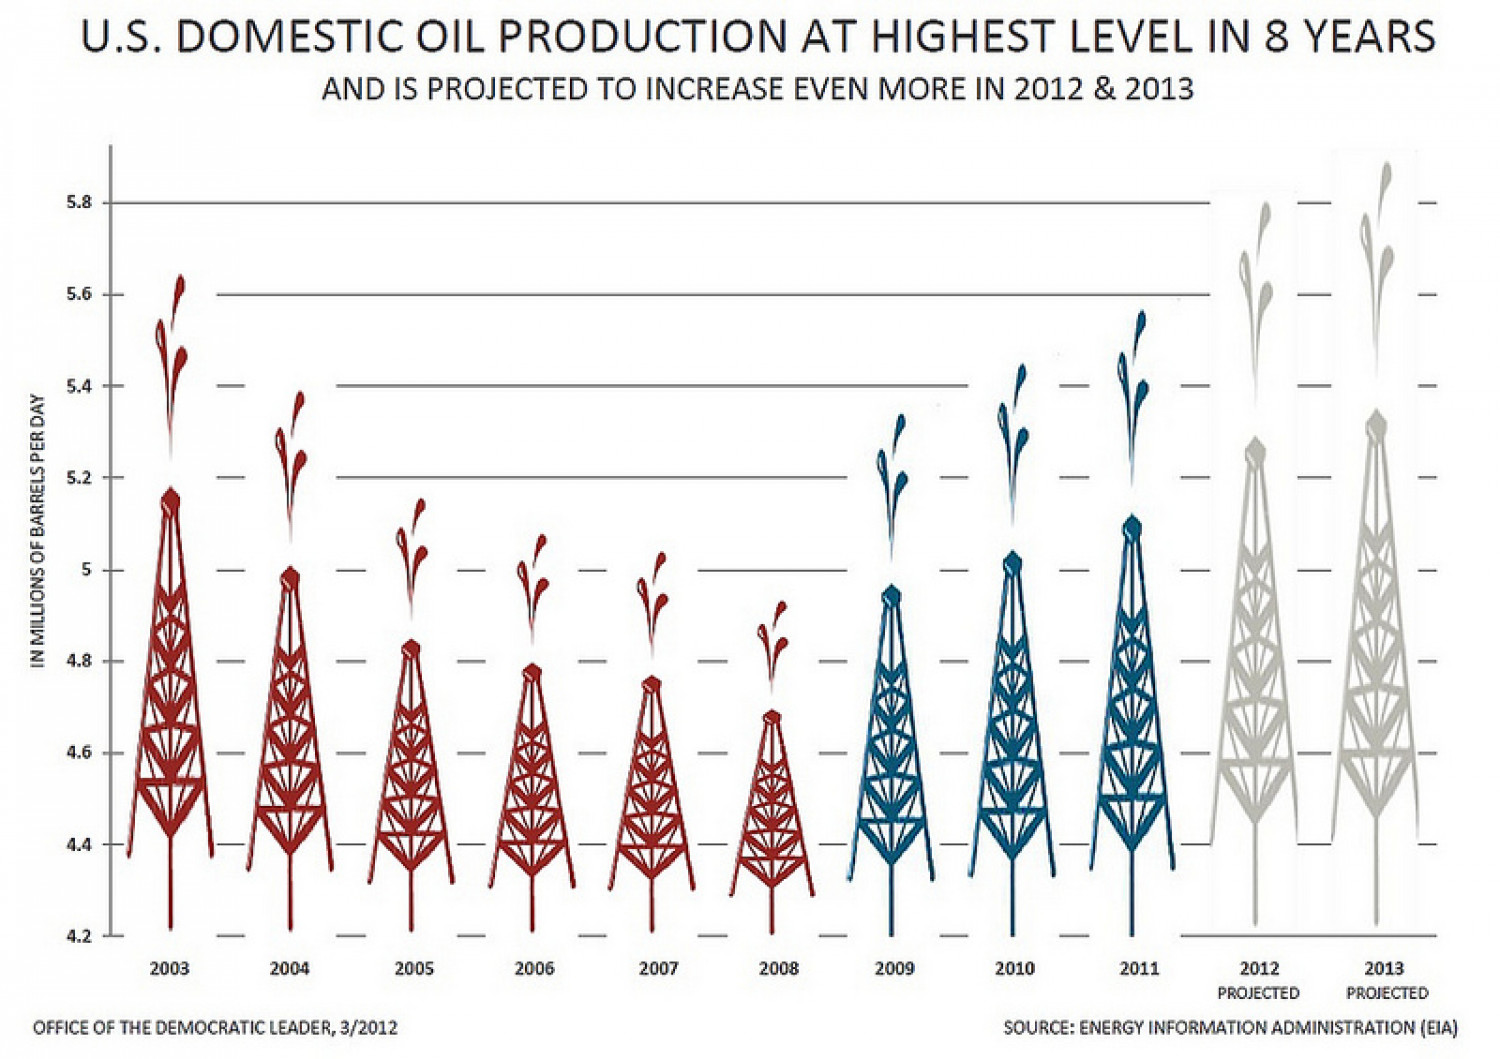 U.S. Domestic Oil Production At Highest Level in Eight Years Infographic